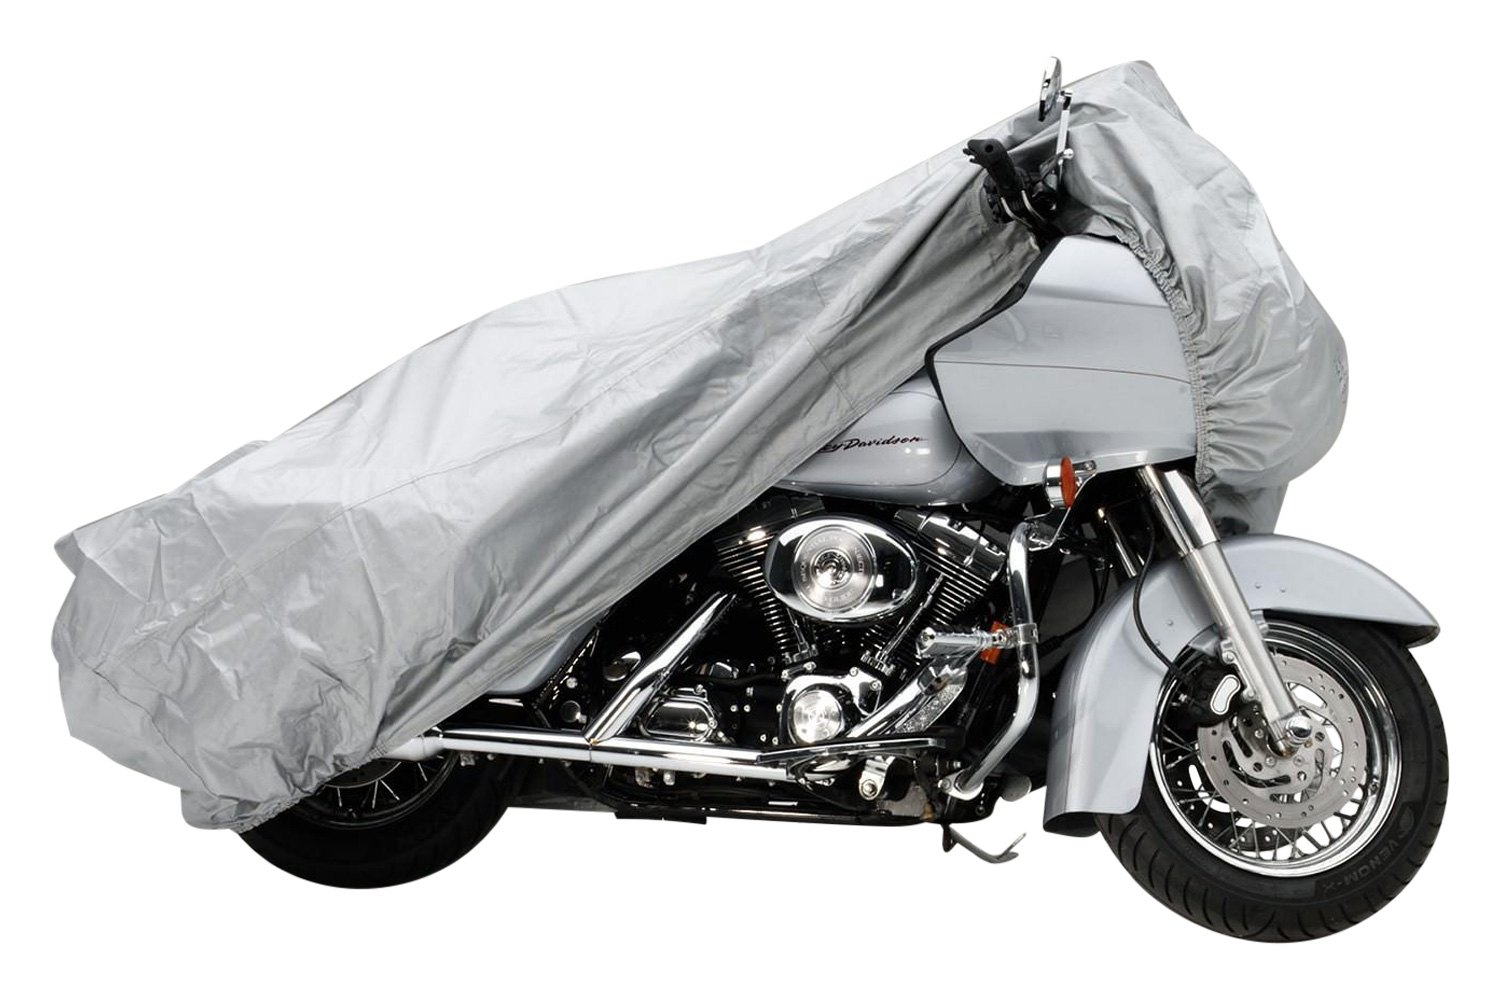 Harley Davidson Cover: Custom Fit Harley-Davidson Motorcycle Cover